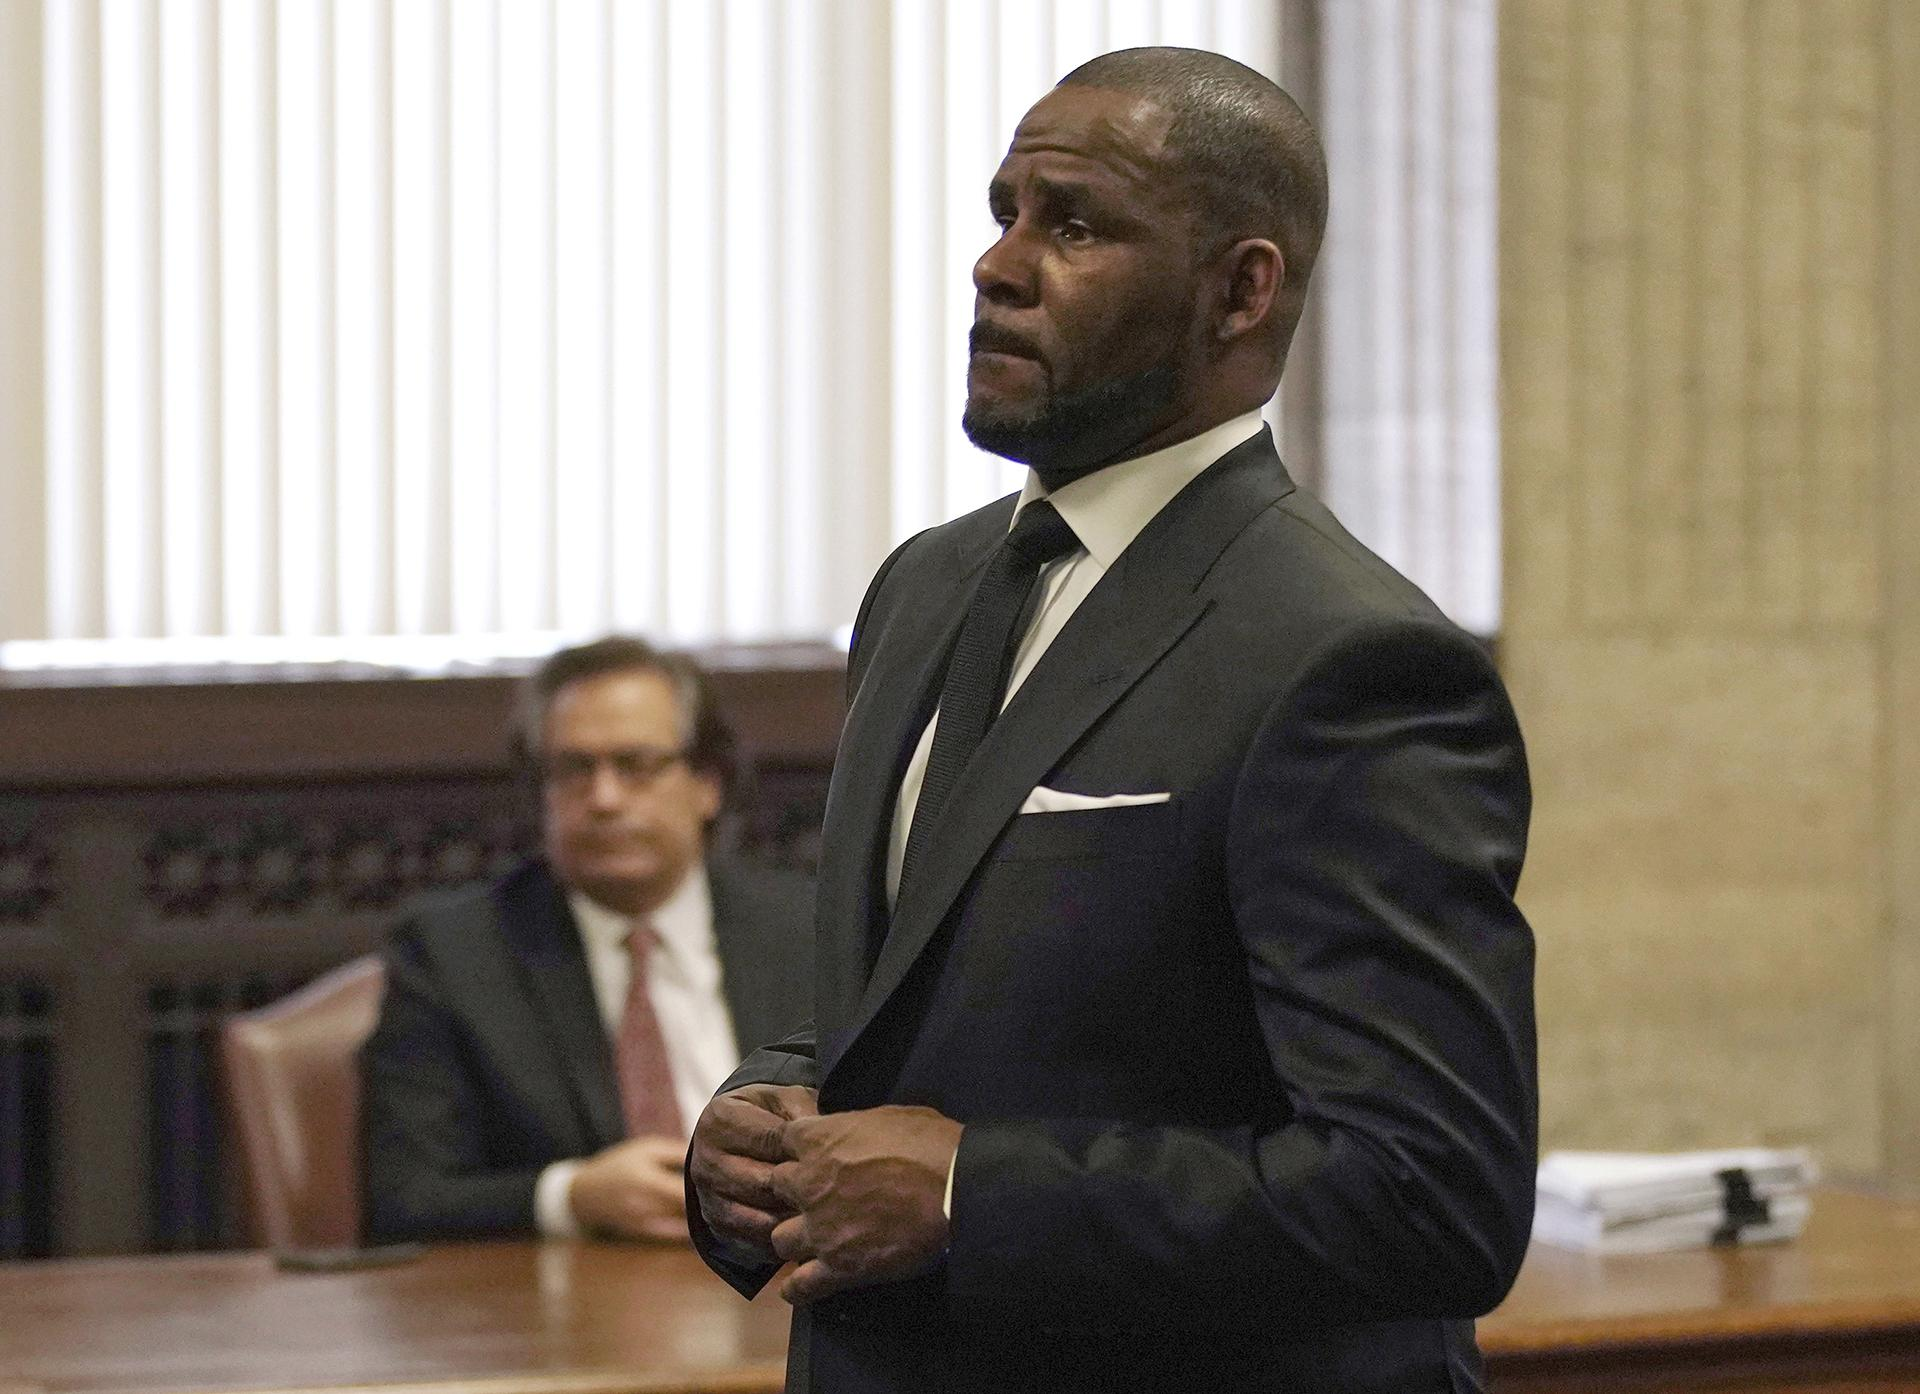 R. Kelly appears for a hearing at the Leighton Criminal Court Building on Friday, March 22, 2019 in Chicago. (E. Jason Wambsgans / Chicago Tribune via AP, Pool)